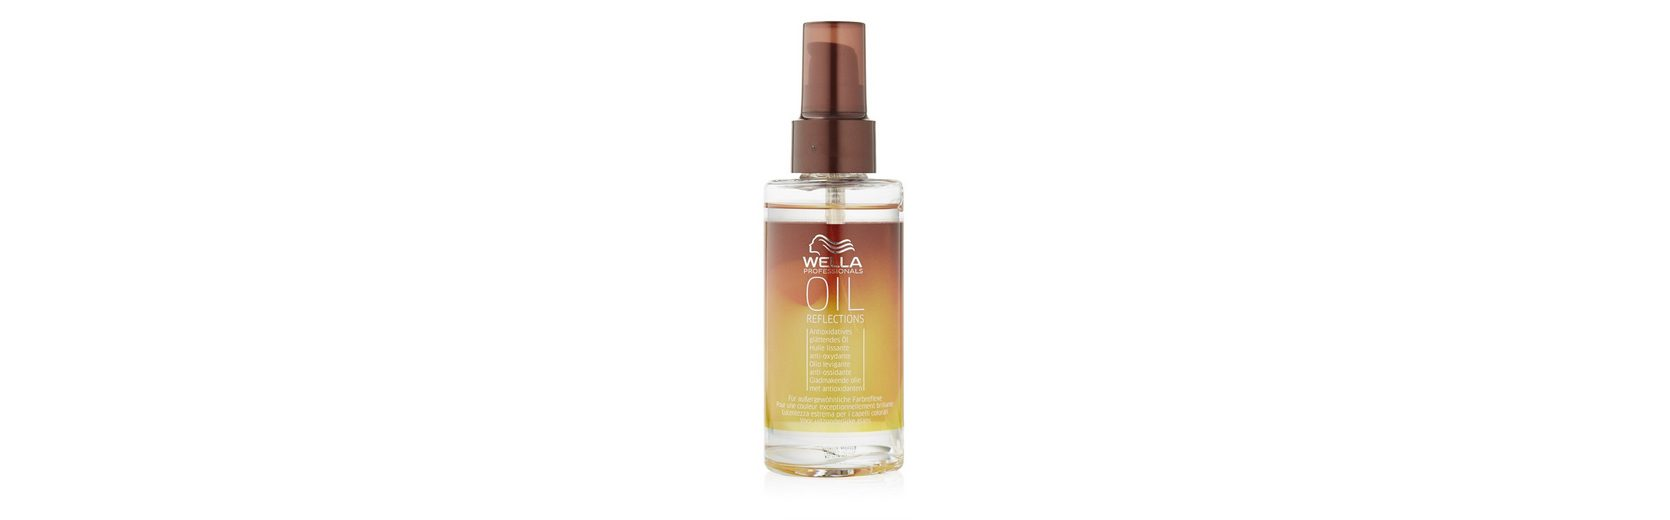 Wella Professionals Haaröl »Care Oil Reflections«